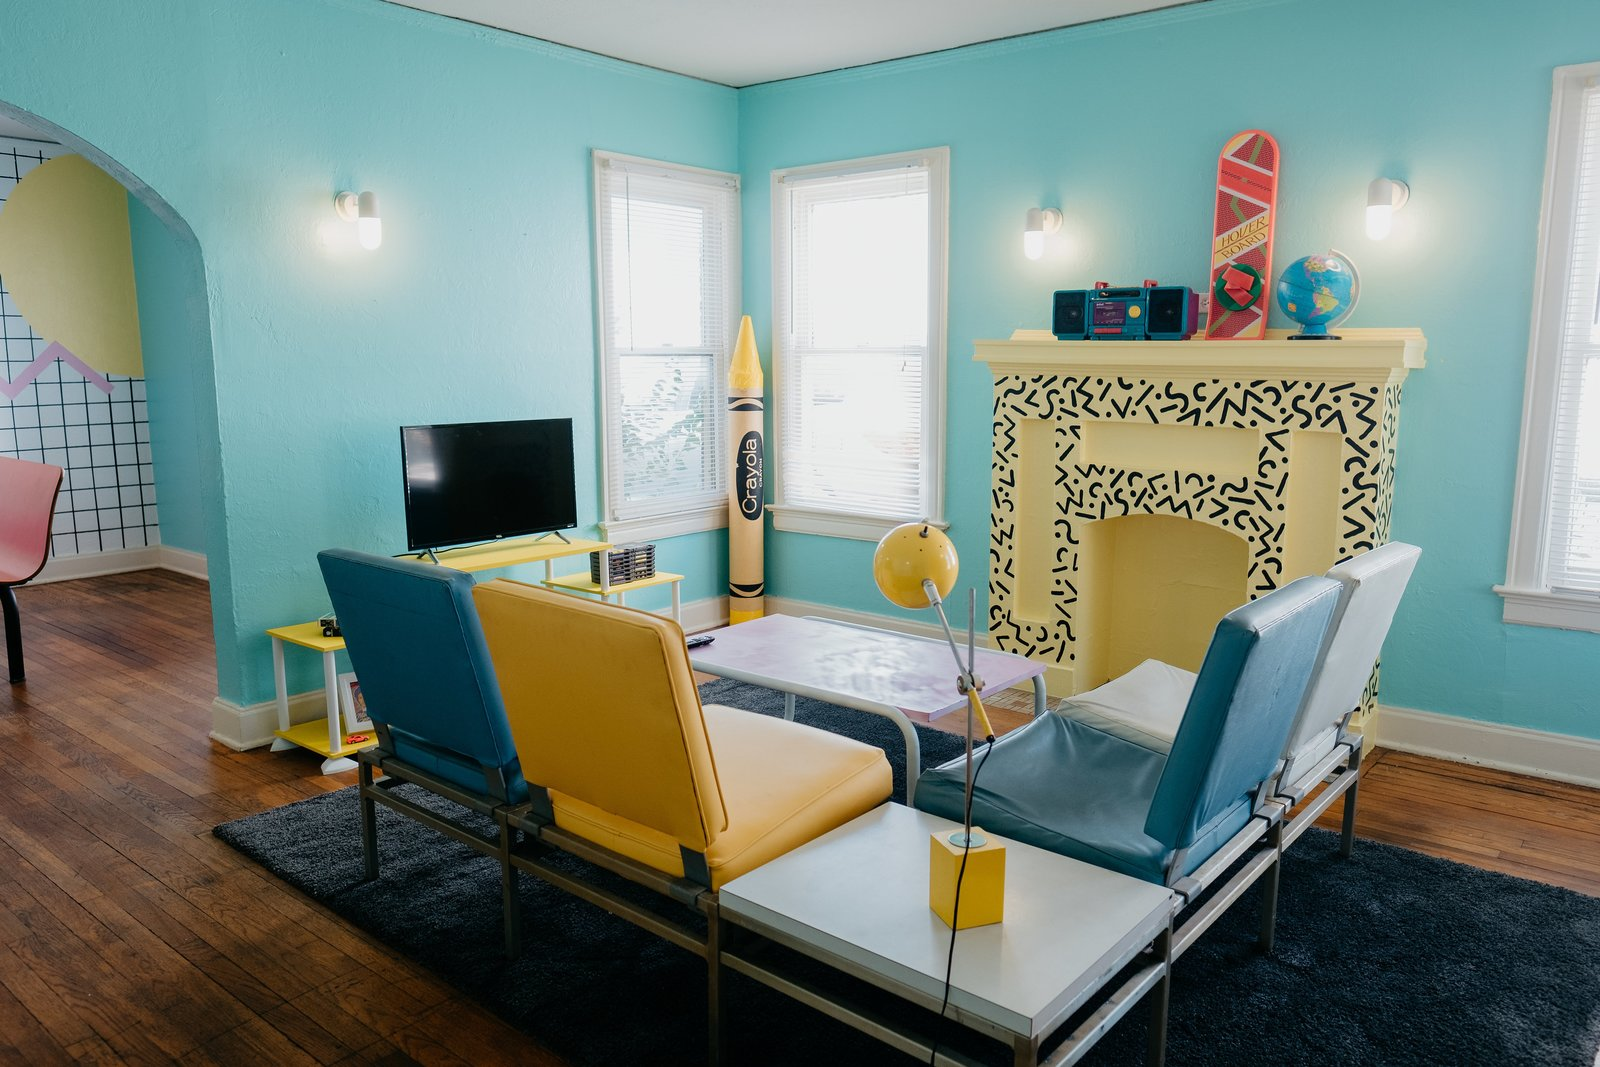 The McFly Airbnb Jeremy Kelsey Turner living room